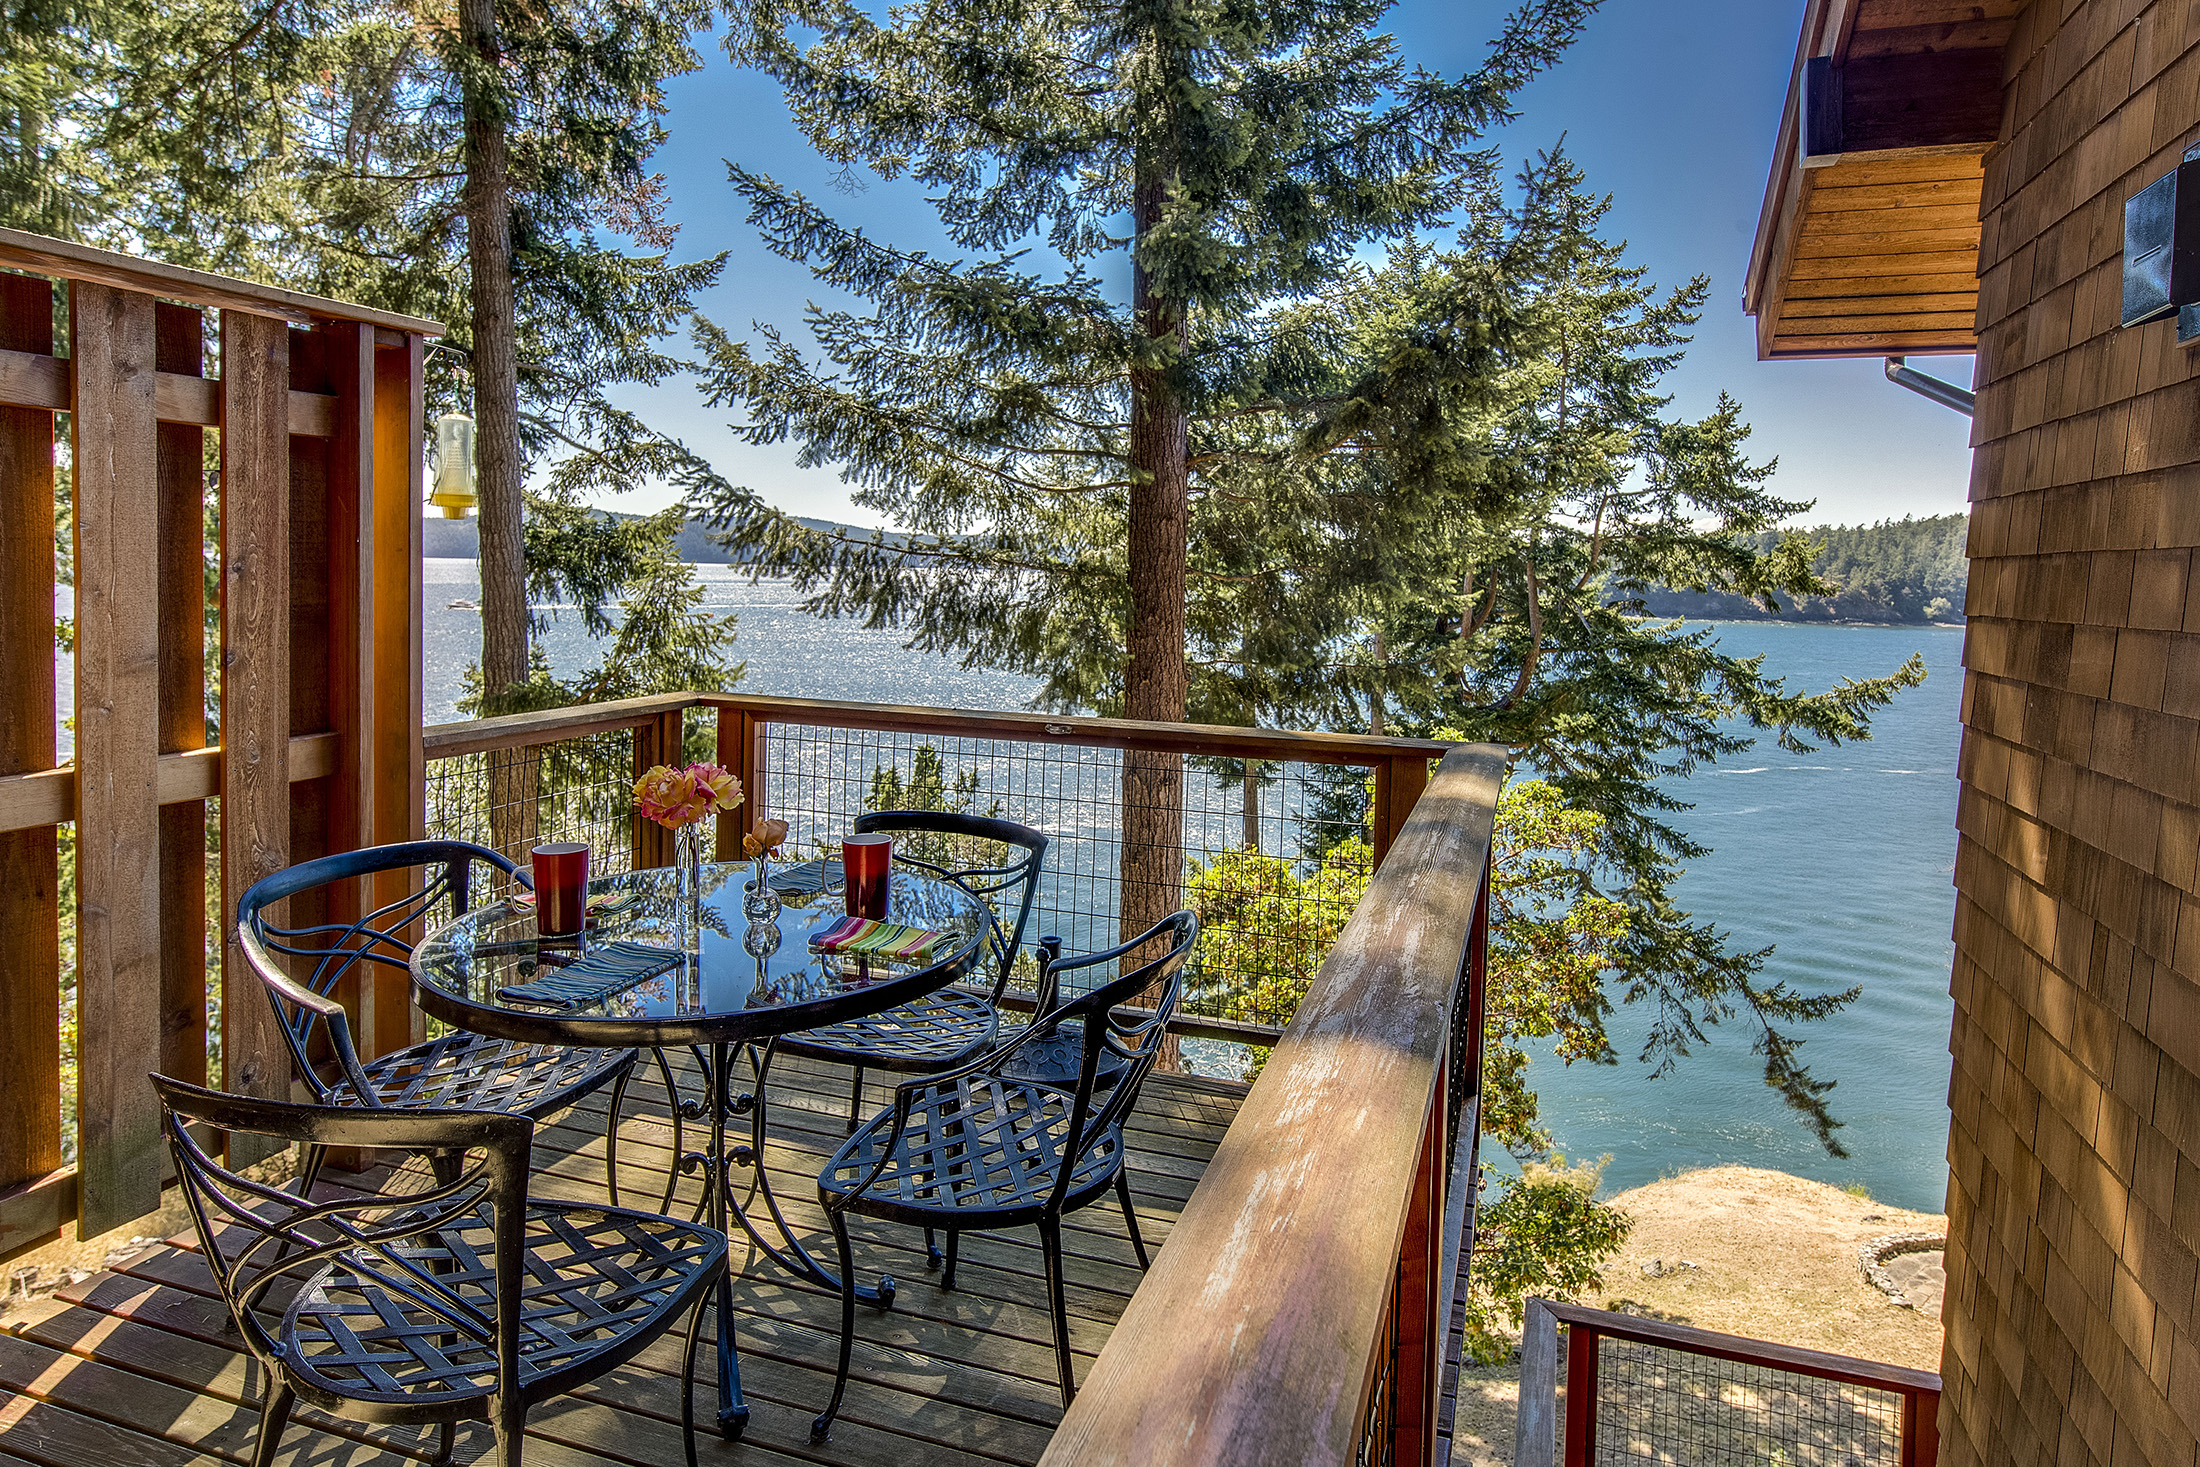 By the Numbers - The average waterfront prices paid were $740,000 among 26 residential homes sold on Lopez and Decatur Islands; $1.2 million among 33 homes sold on San Juan Island; and $2.25 million among 25 homes sold on Orcas Island.